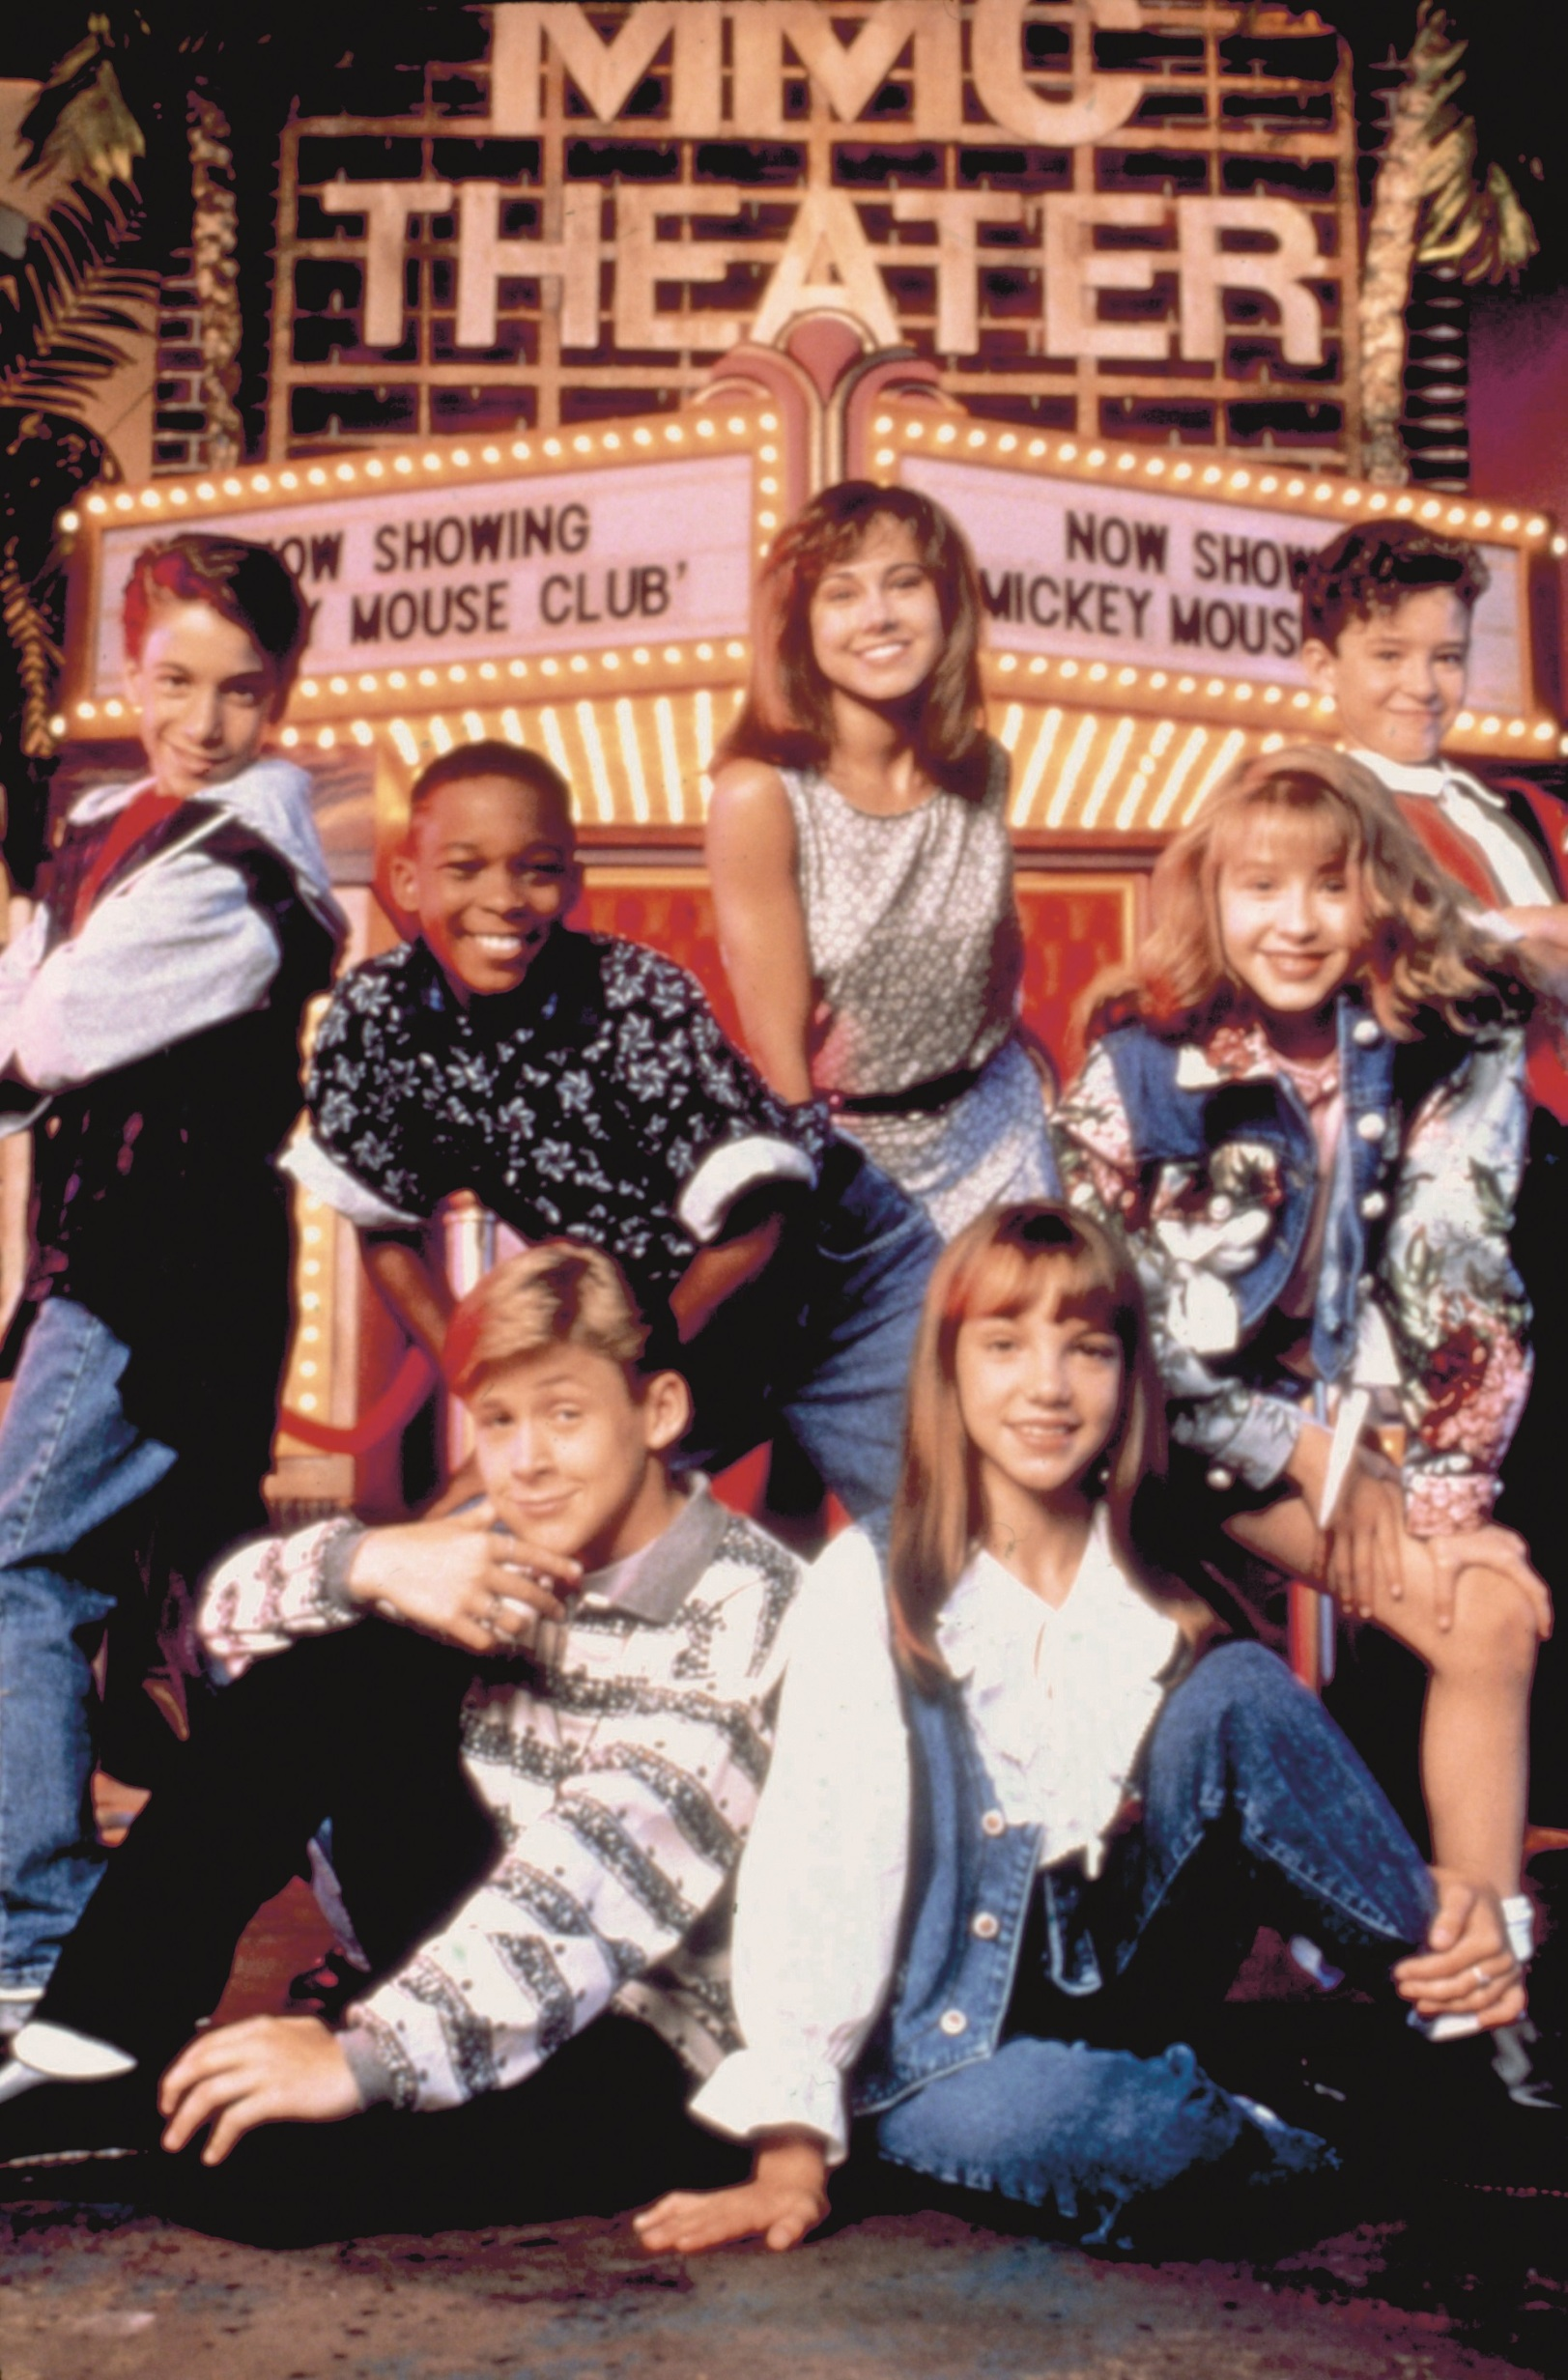 MICKEY MOUSE CLUB, (clockwise from upper center) Nikki DeLoach, Justin Timberlake, Christina Aguilera, Britney Spears, Ryan Gosling, T.J. Fantini, Tate Lynche, 1989-1994., Image: 99008313, License: Rights-managed, Restrictions: For usage credit please use; ©Buena Vista Pictures/Courtesy Everett Collection, Model Release: no, Credit line: Buena Vista Pictures/courtesy E / Everett / Profimedia